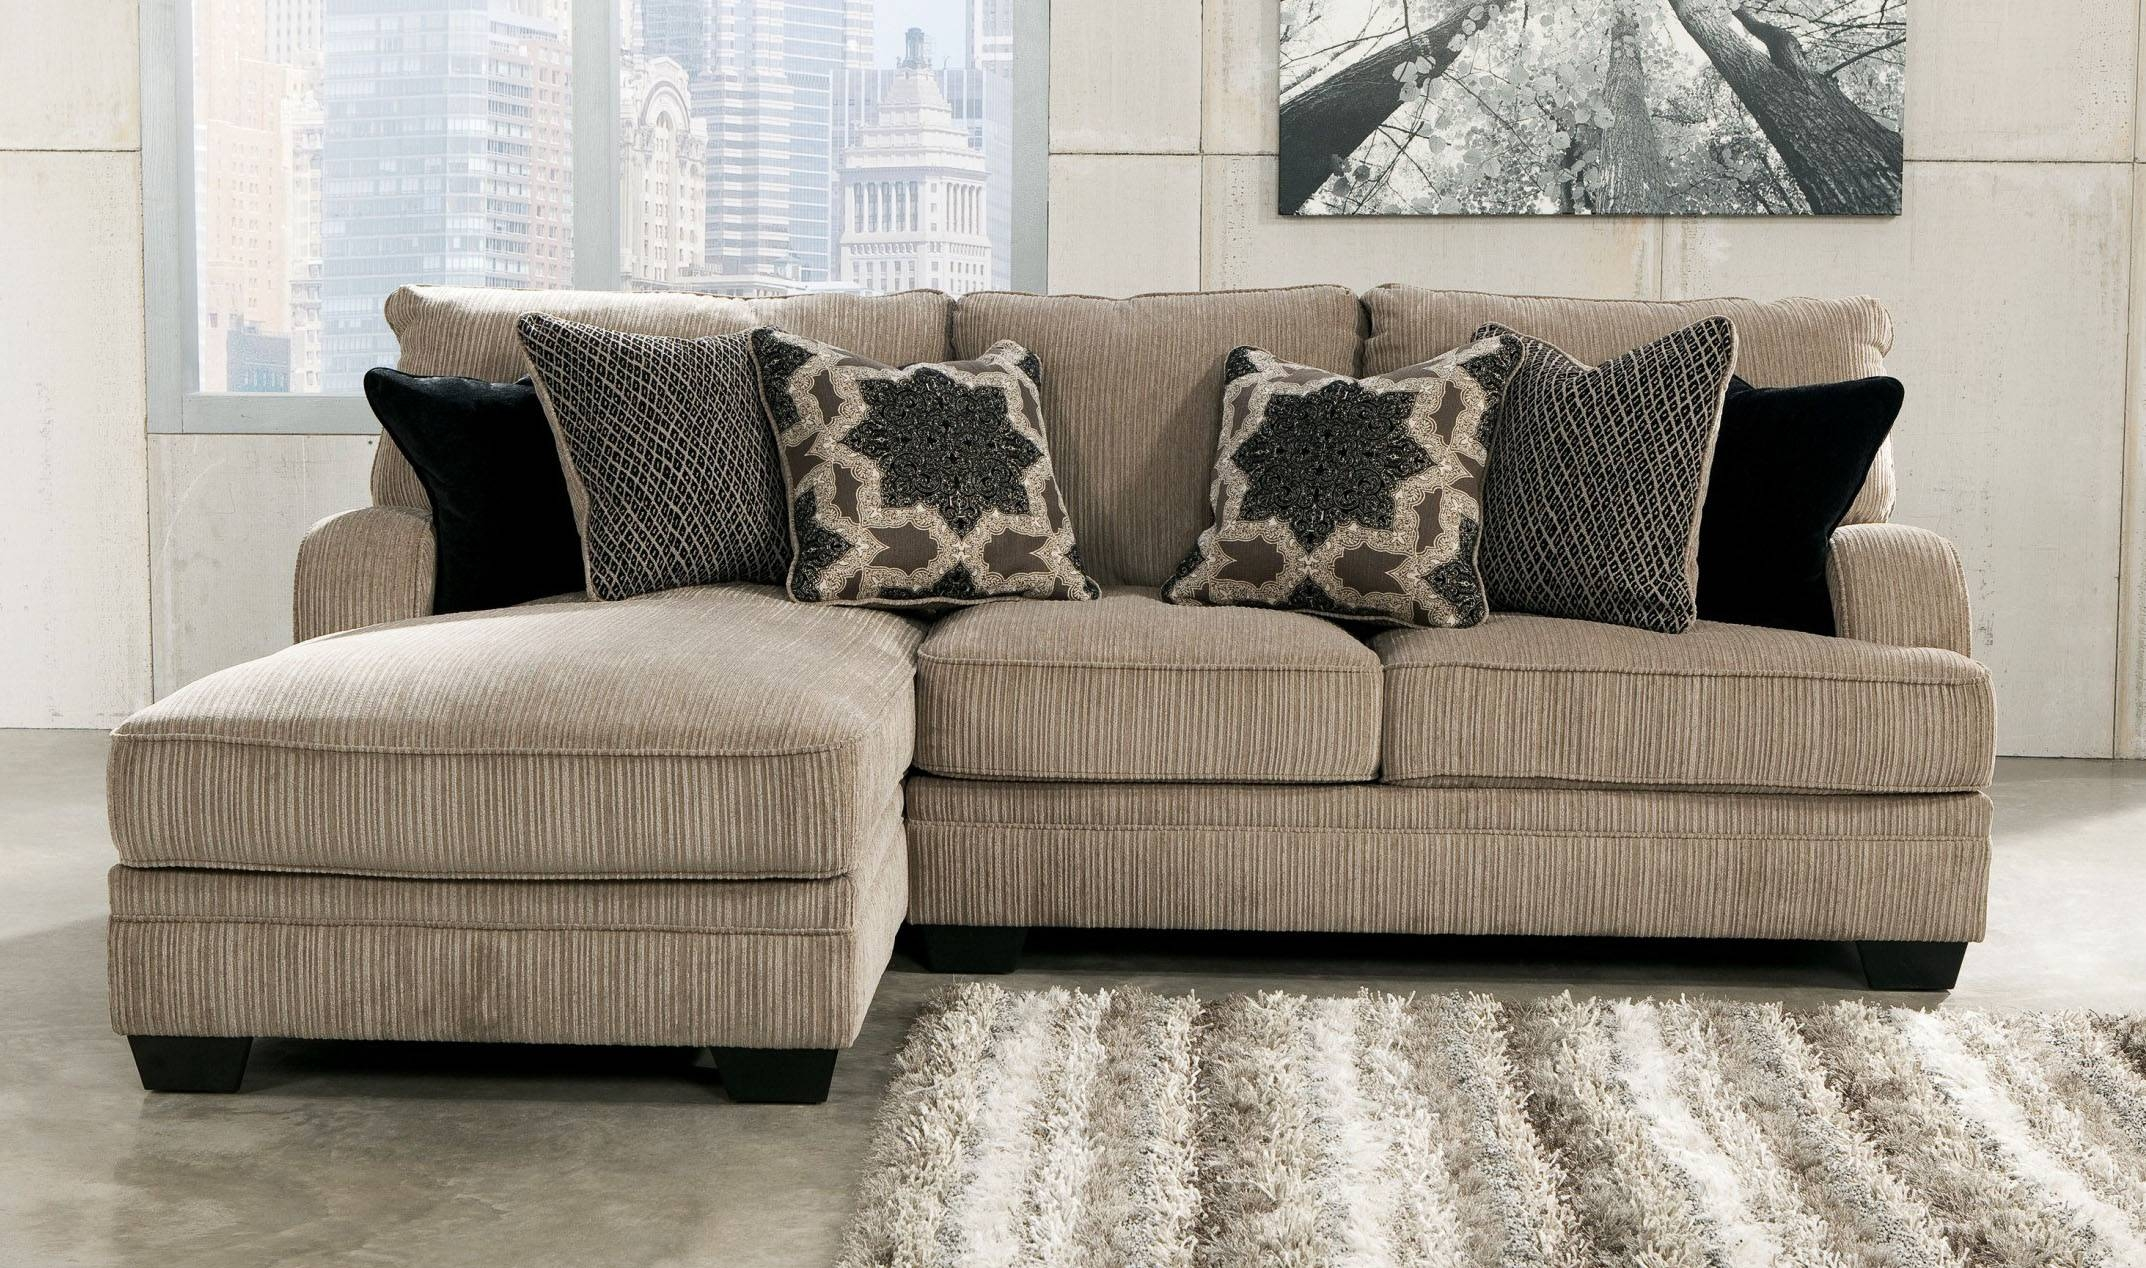 The Most Popular Small Scale Sectional Sofas 97 On Olive Green inside Green Sectional Sofa With Chaise (Image 30 of 30)